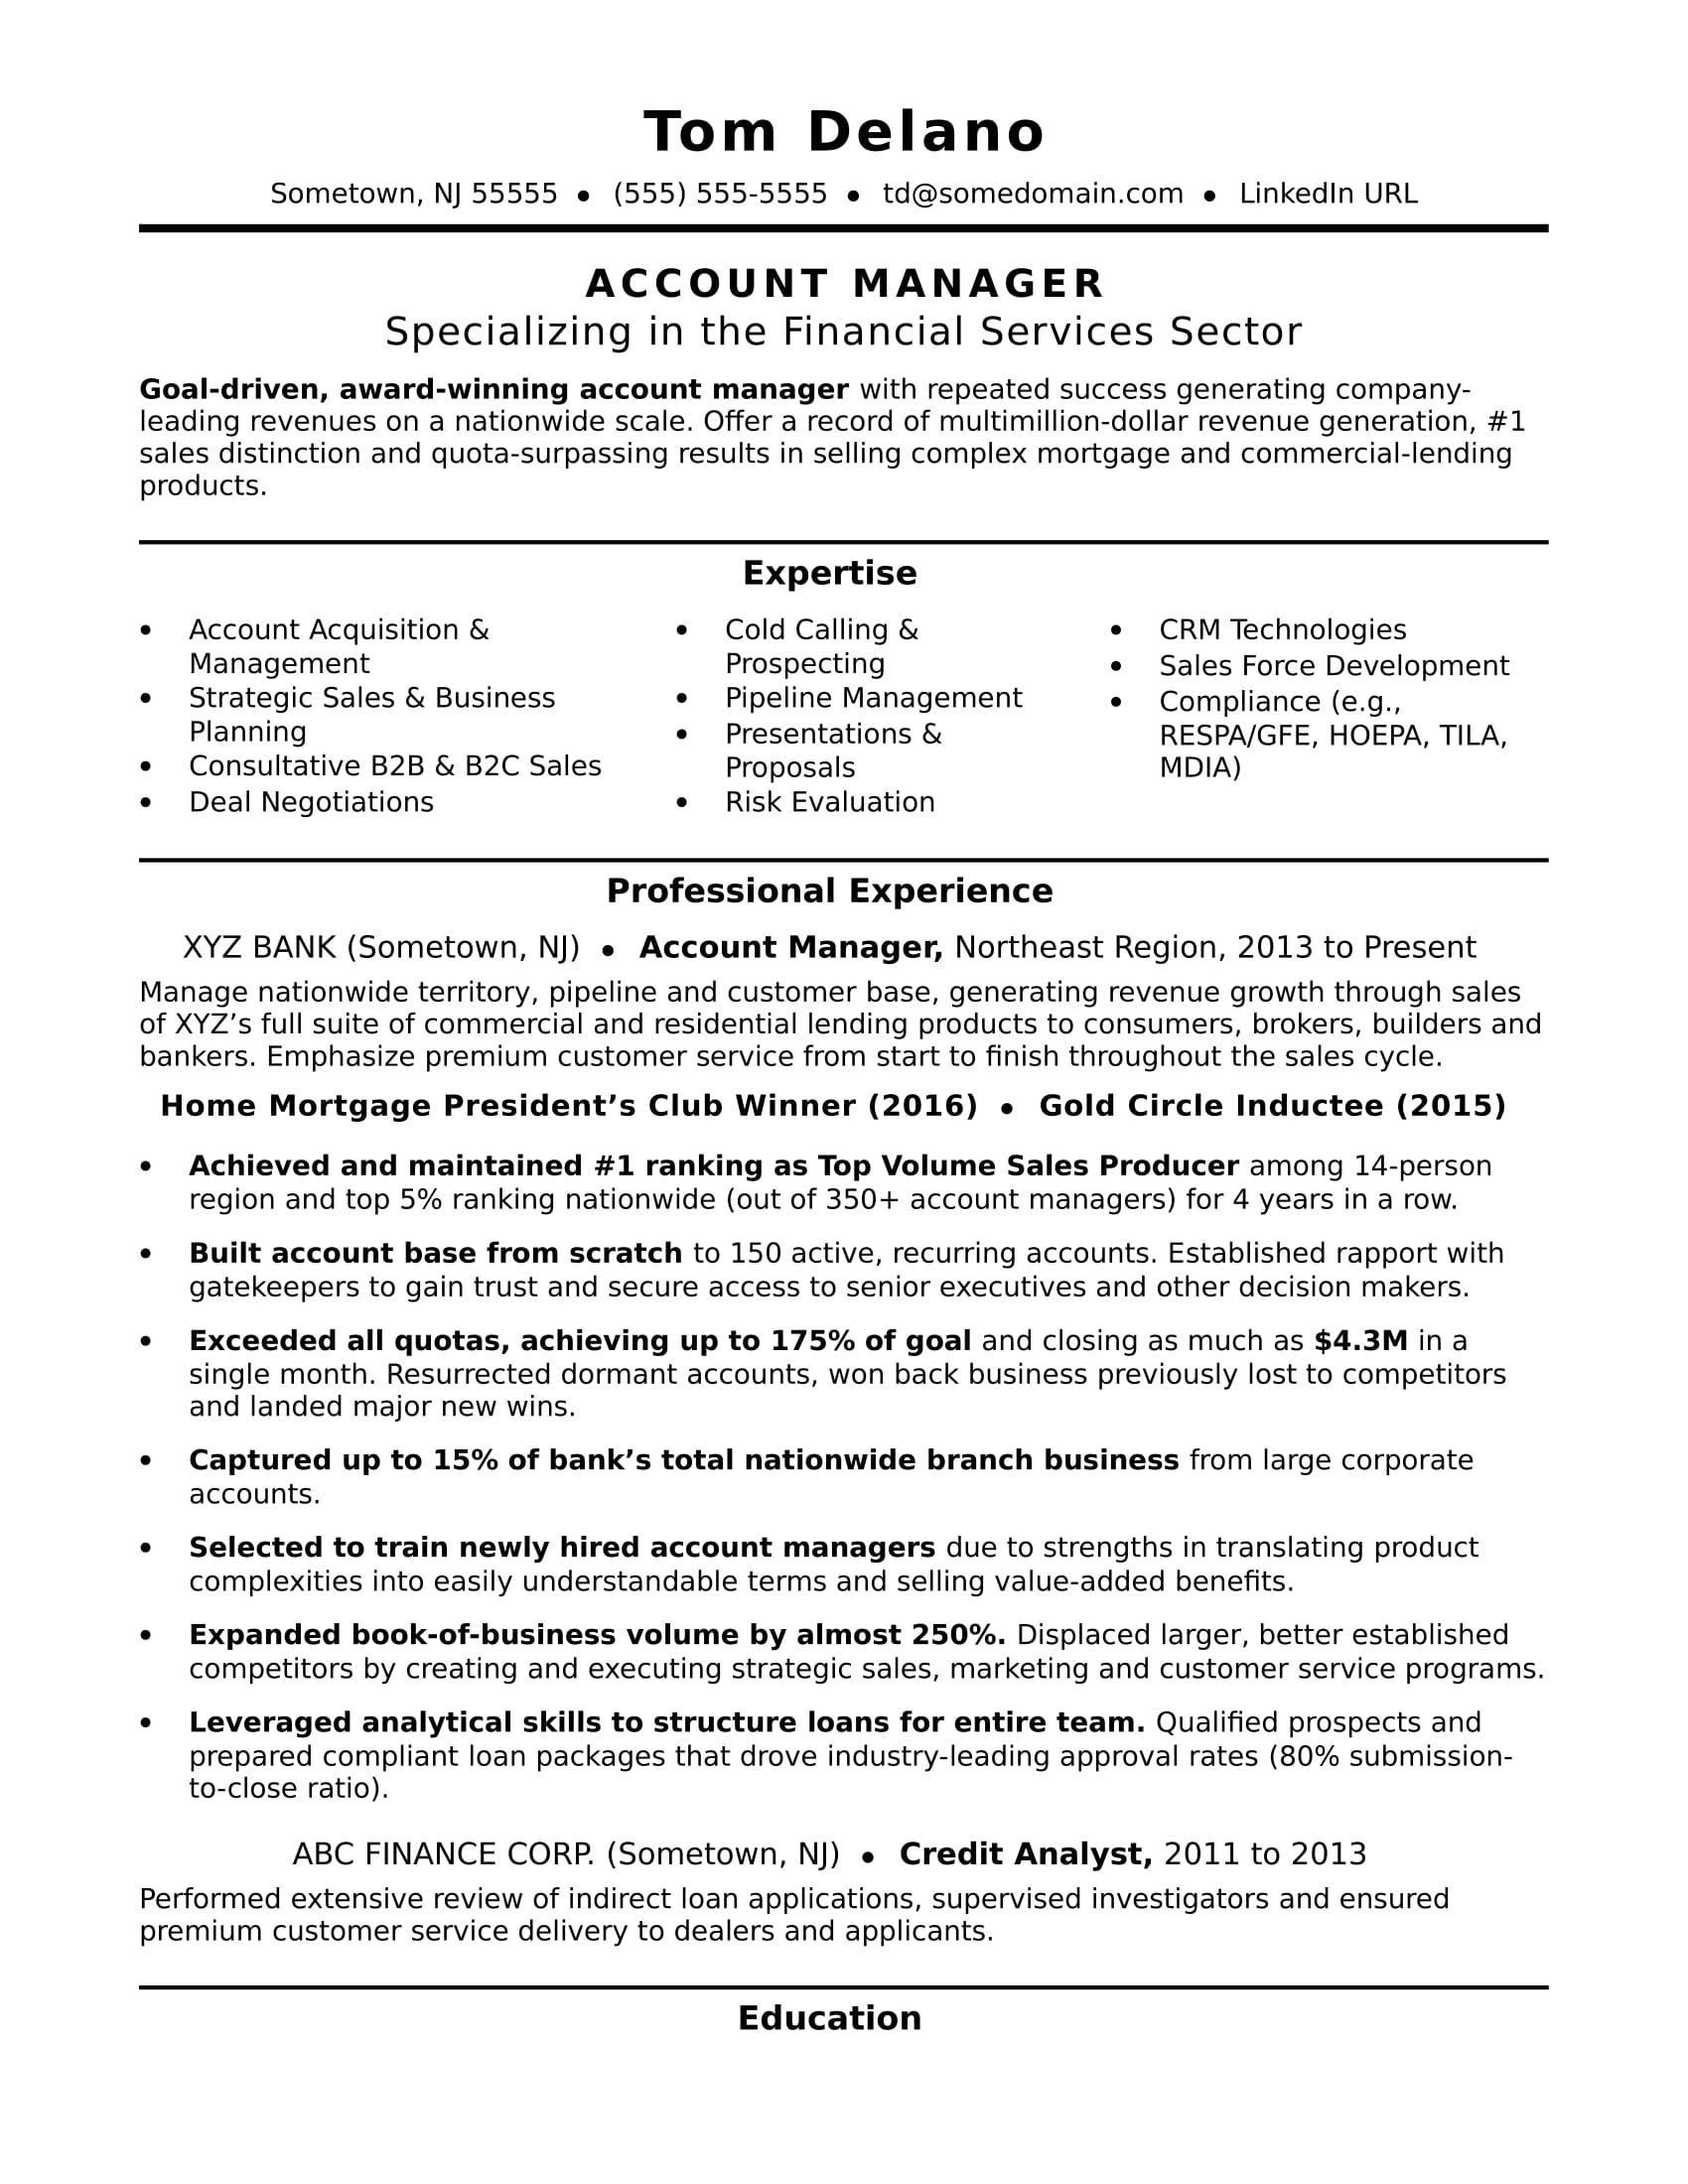 account manager resume sample monster technical career focus on objective for college Resume Technical Account Manager Resume